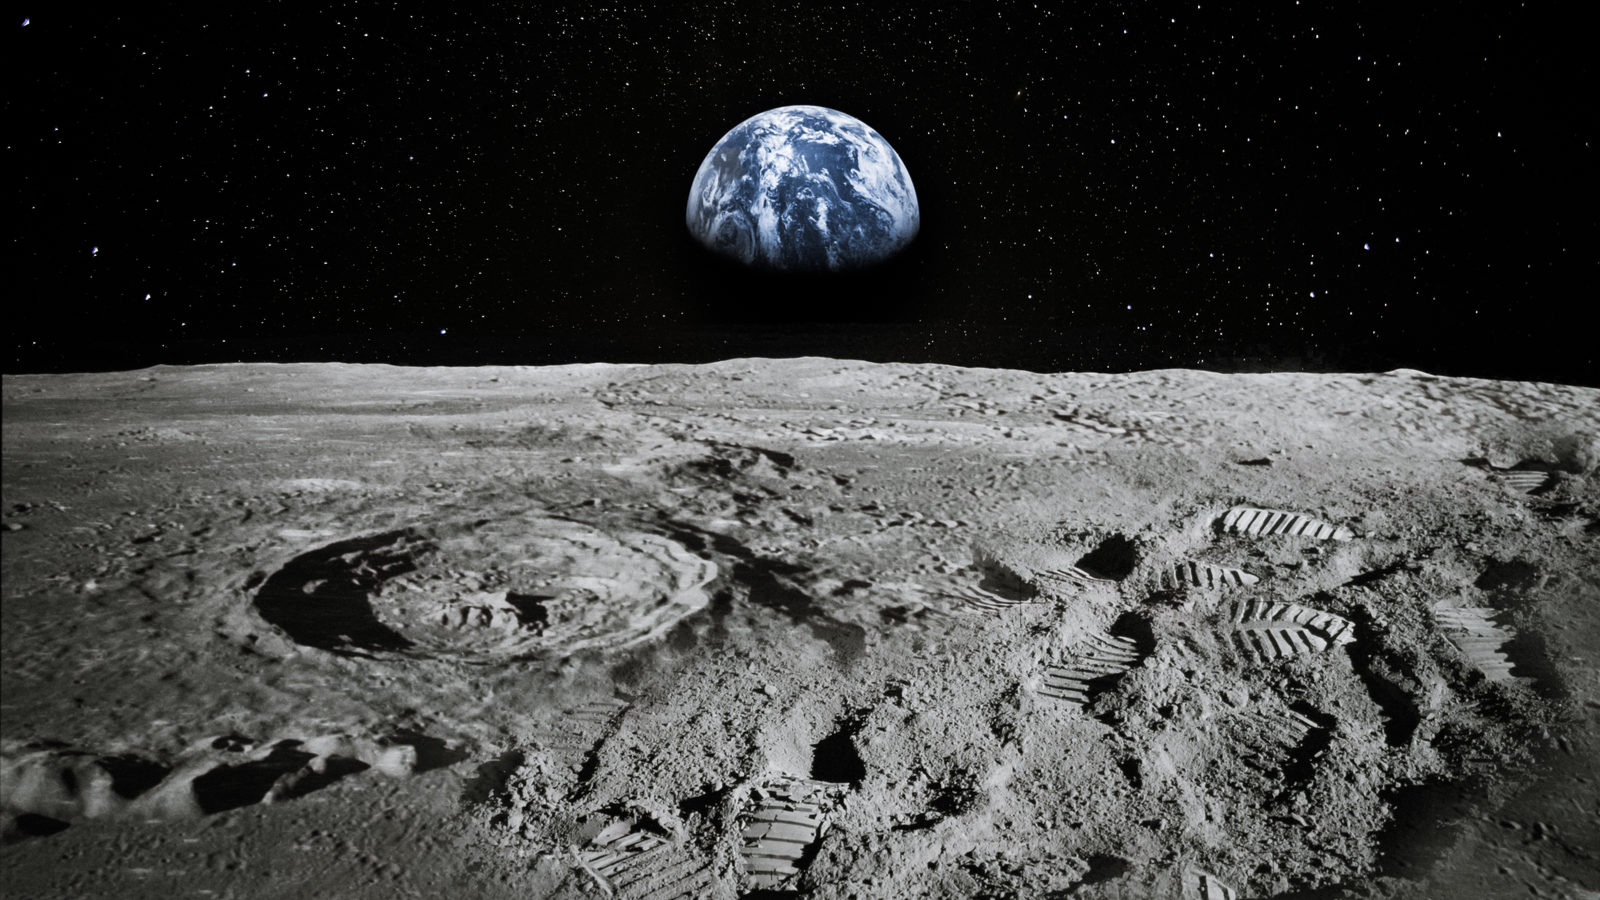 View of the moon limb with the Earth rising on the horizon